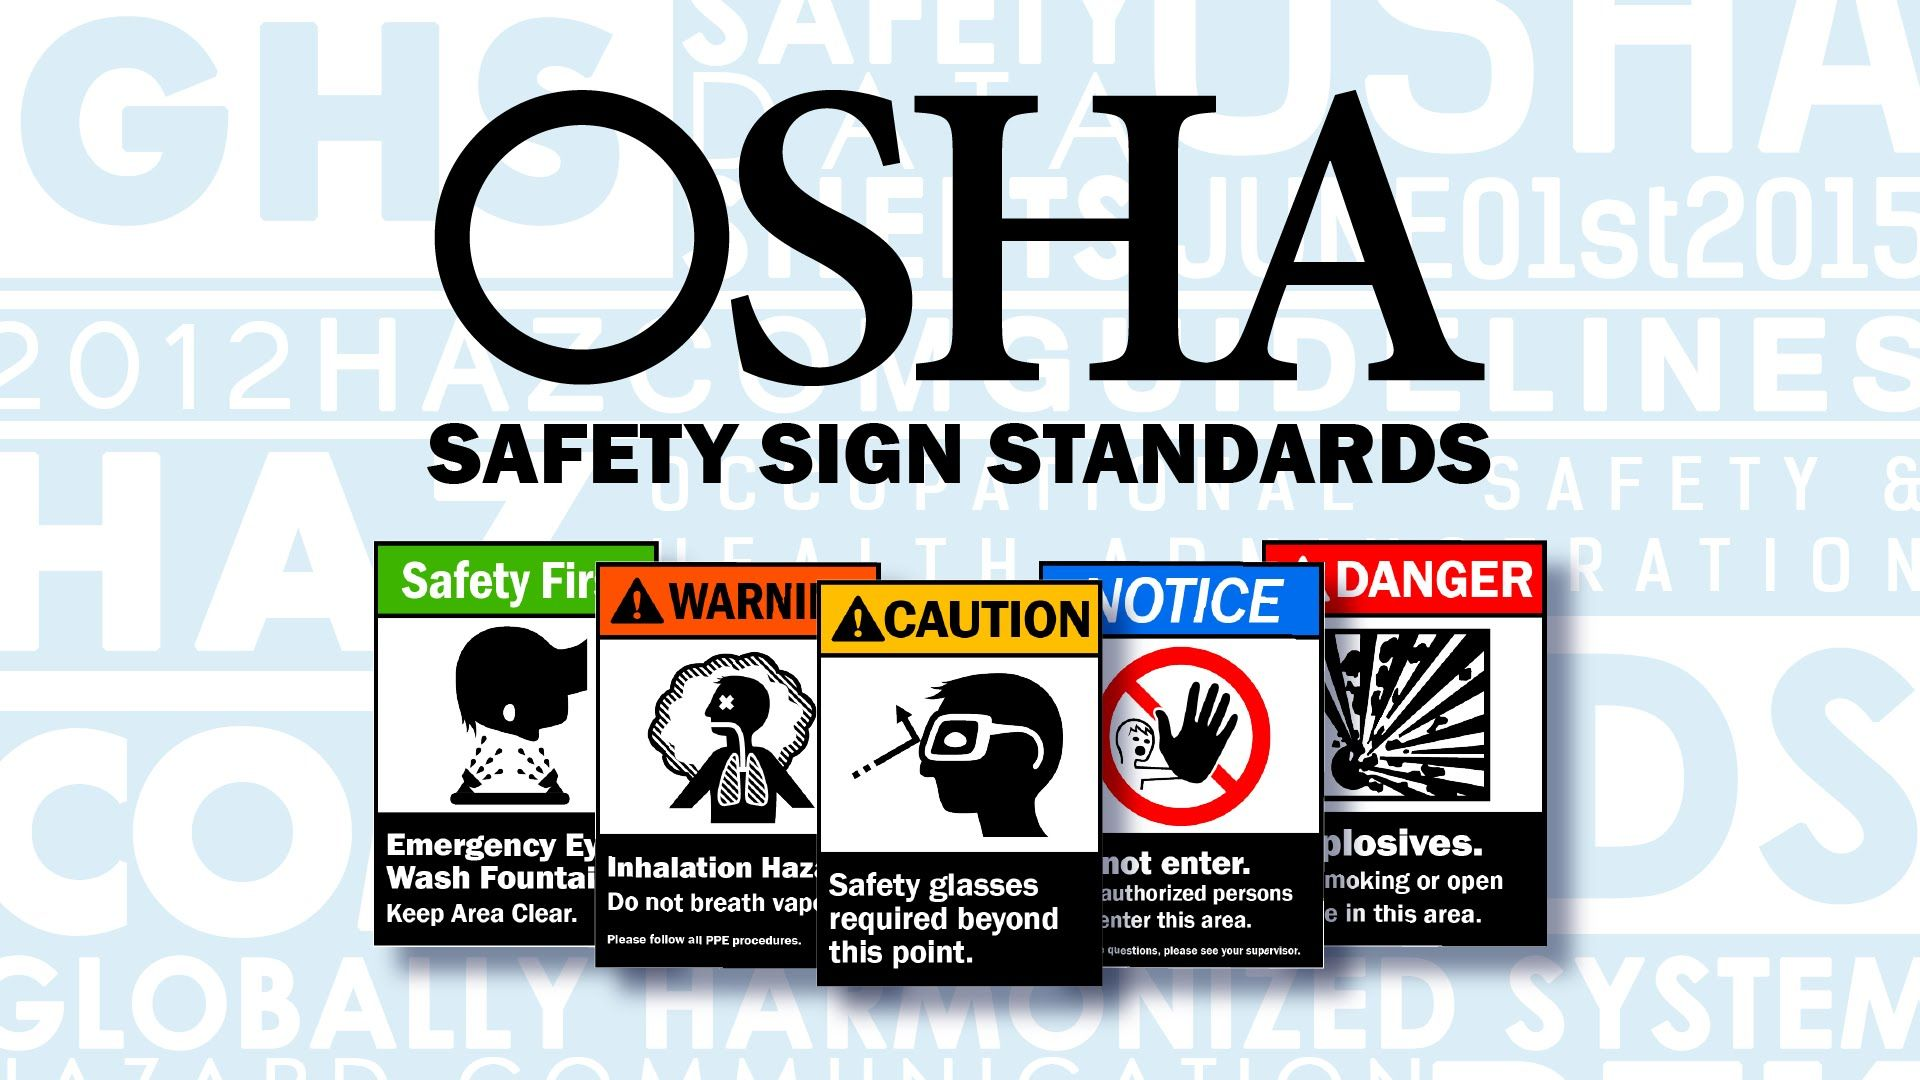 OSHA / ANSI Safety Sign Standards osha management